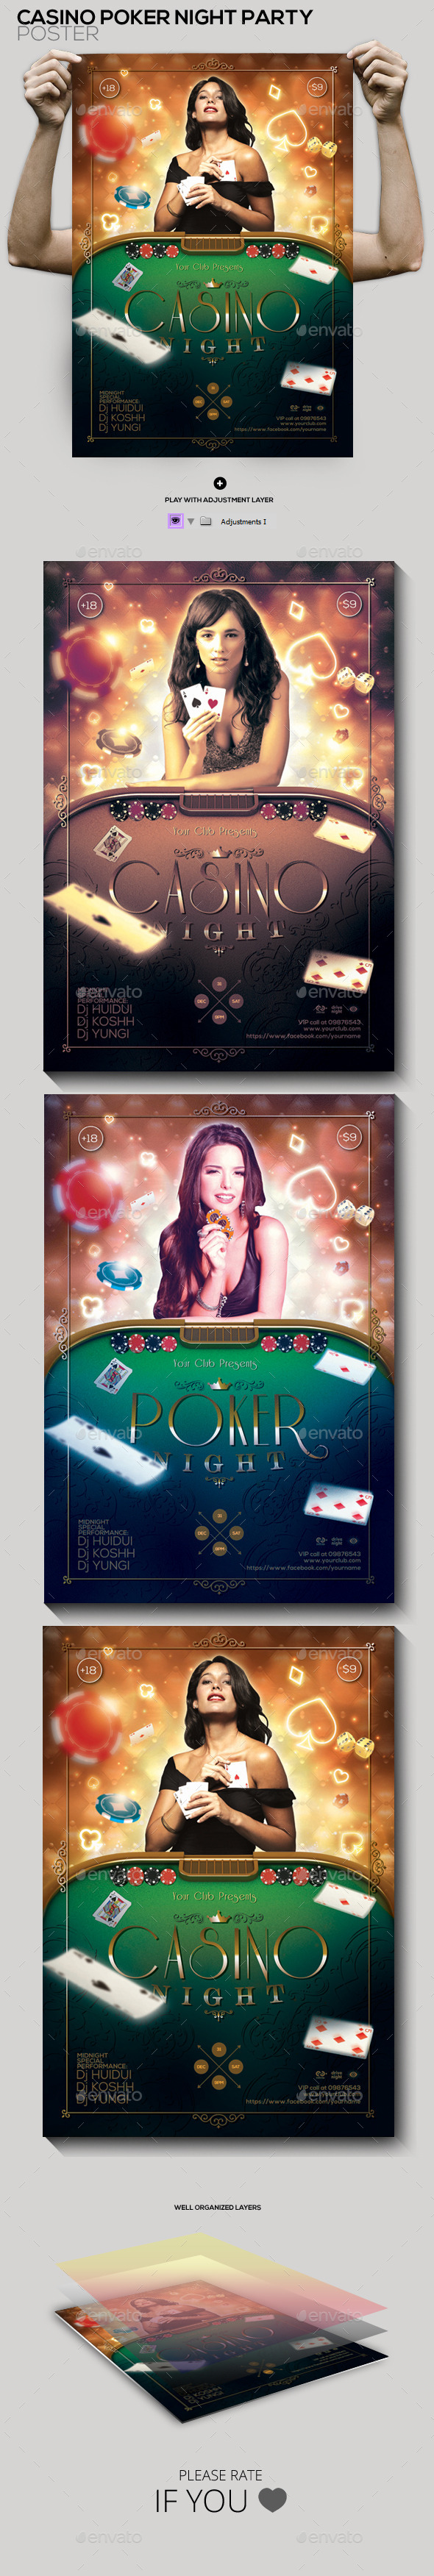 GraphicRiver Casino Poker Night Party Poster Flyer 10202259